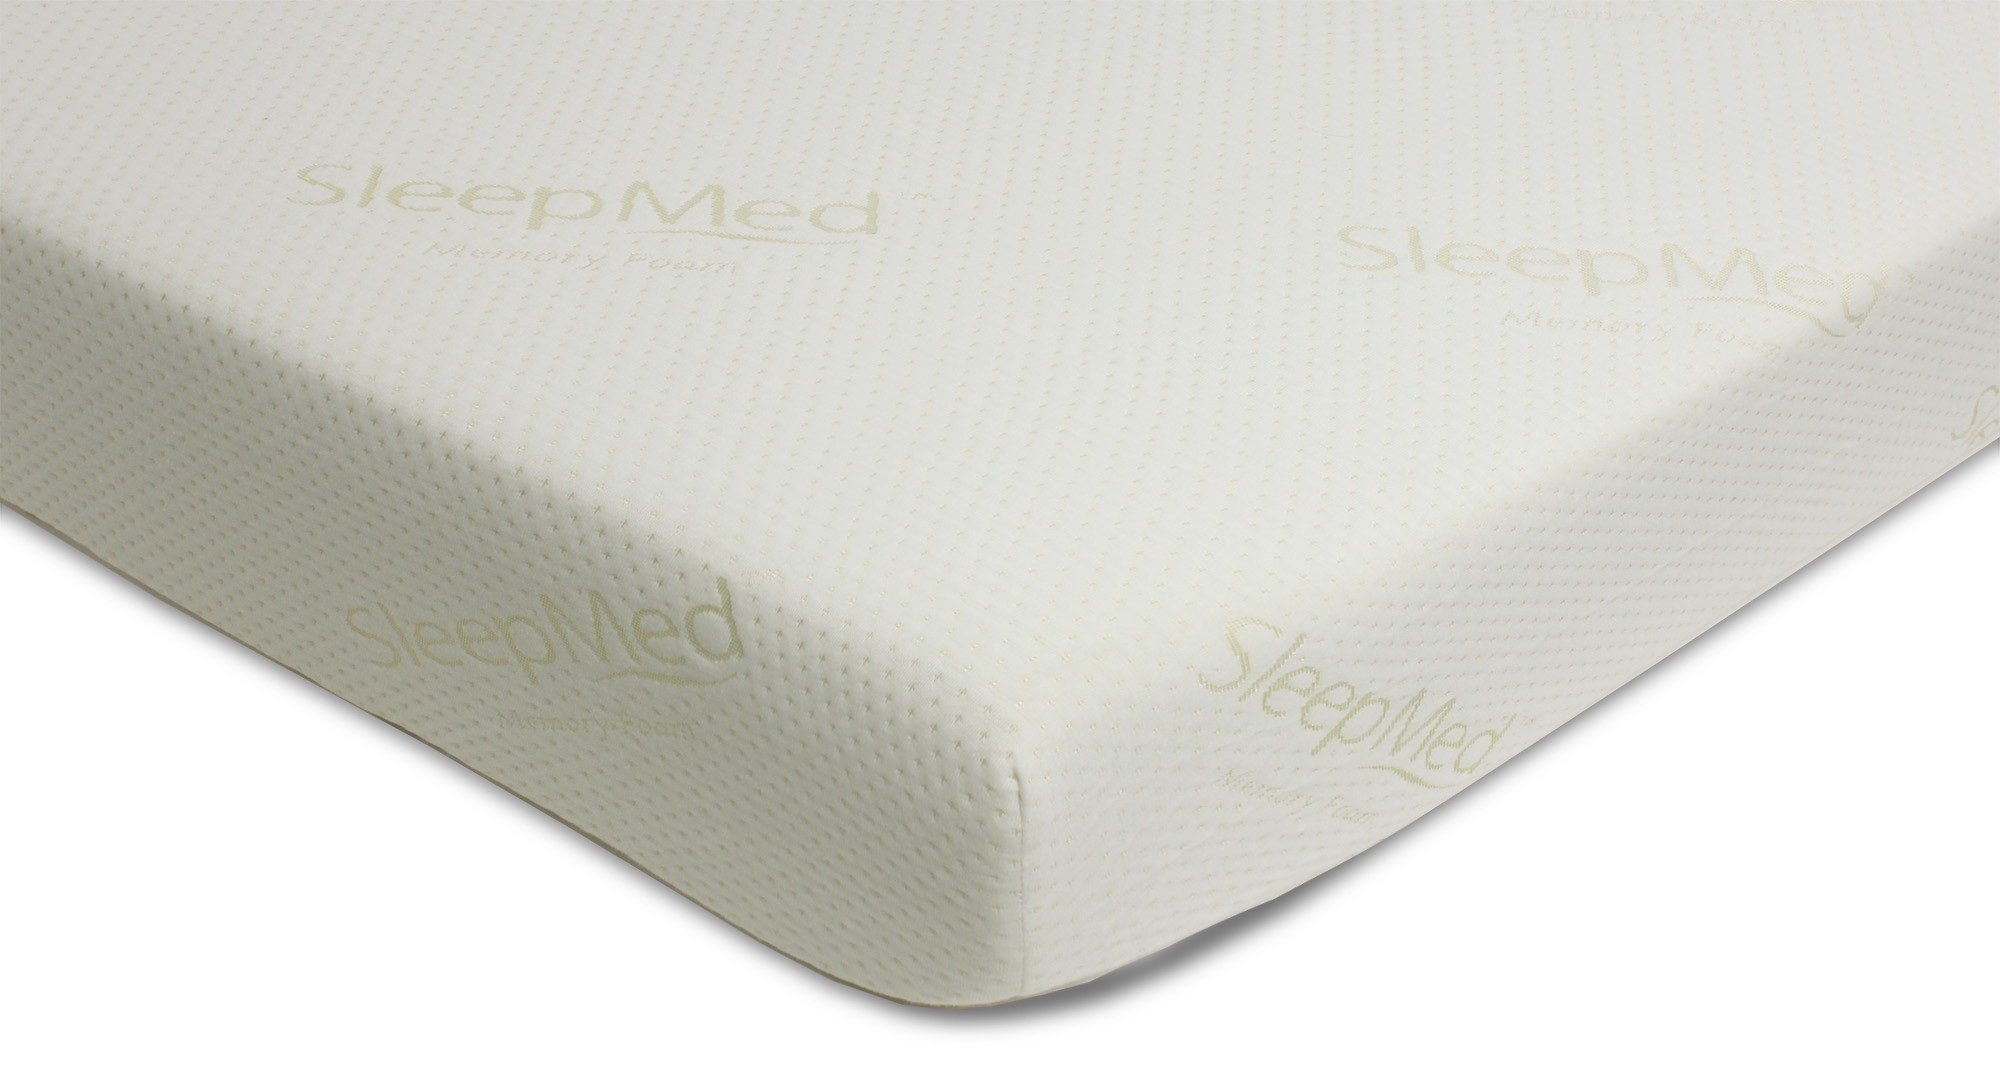 Sleepmed Memory Foam Mattress Single In 5 Inch Mattresses Furniture Home D Cor Fortytwo